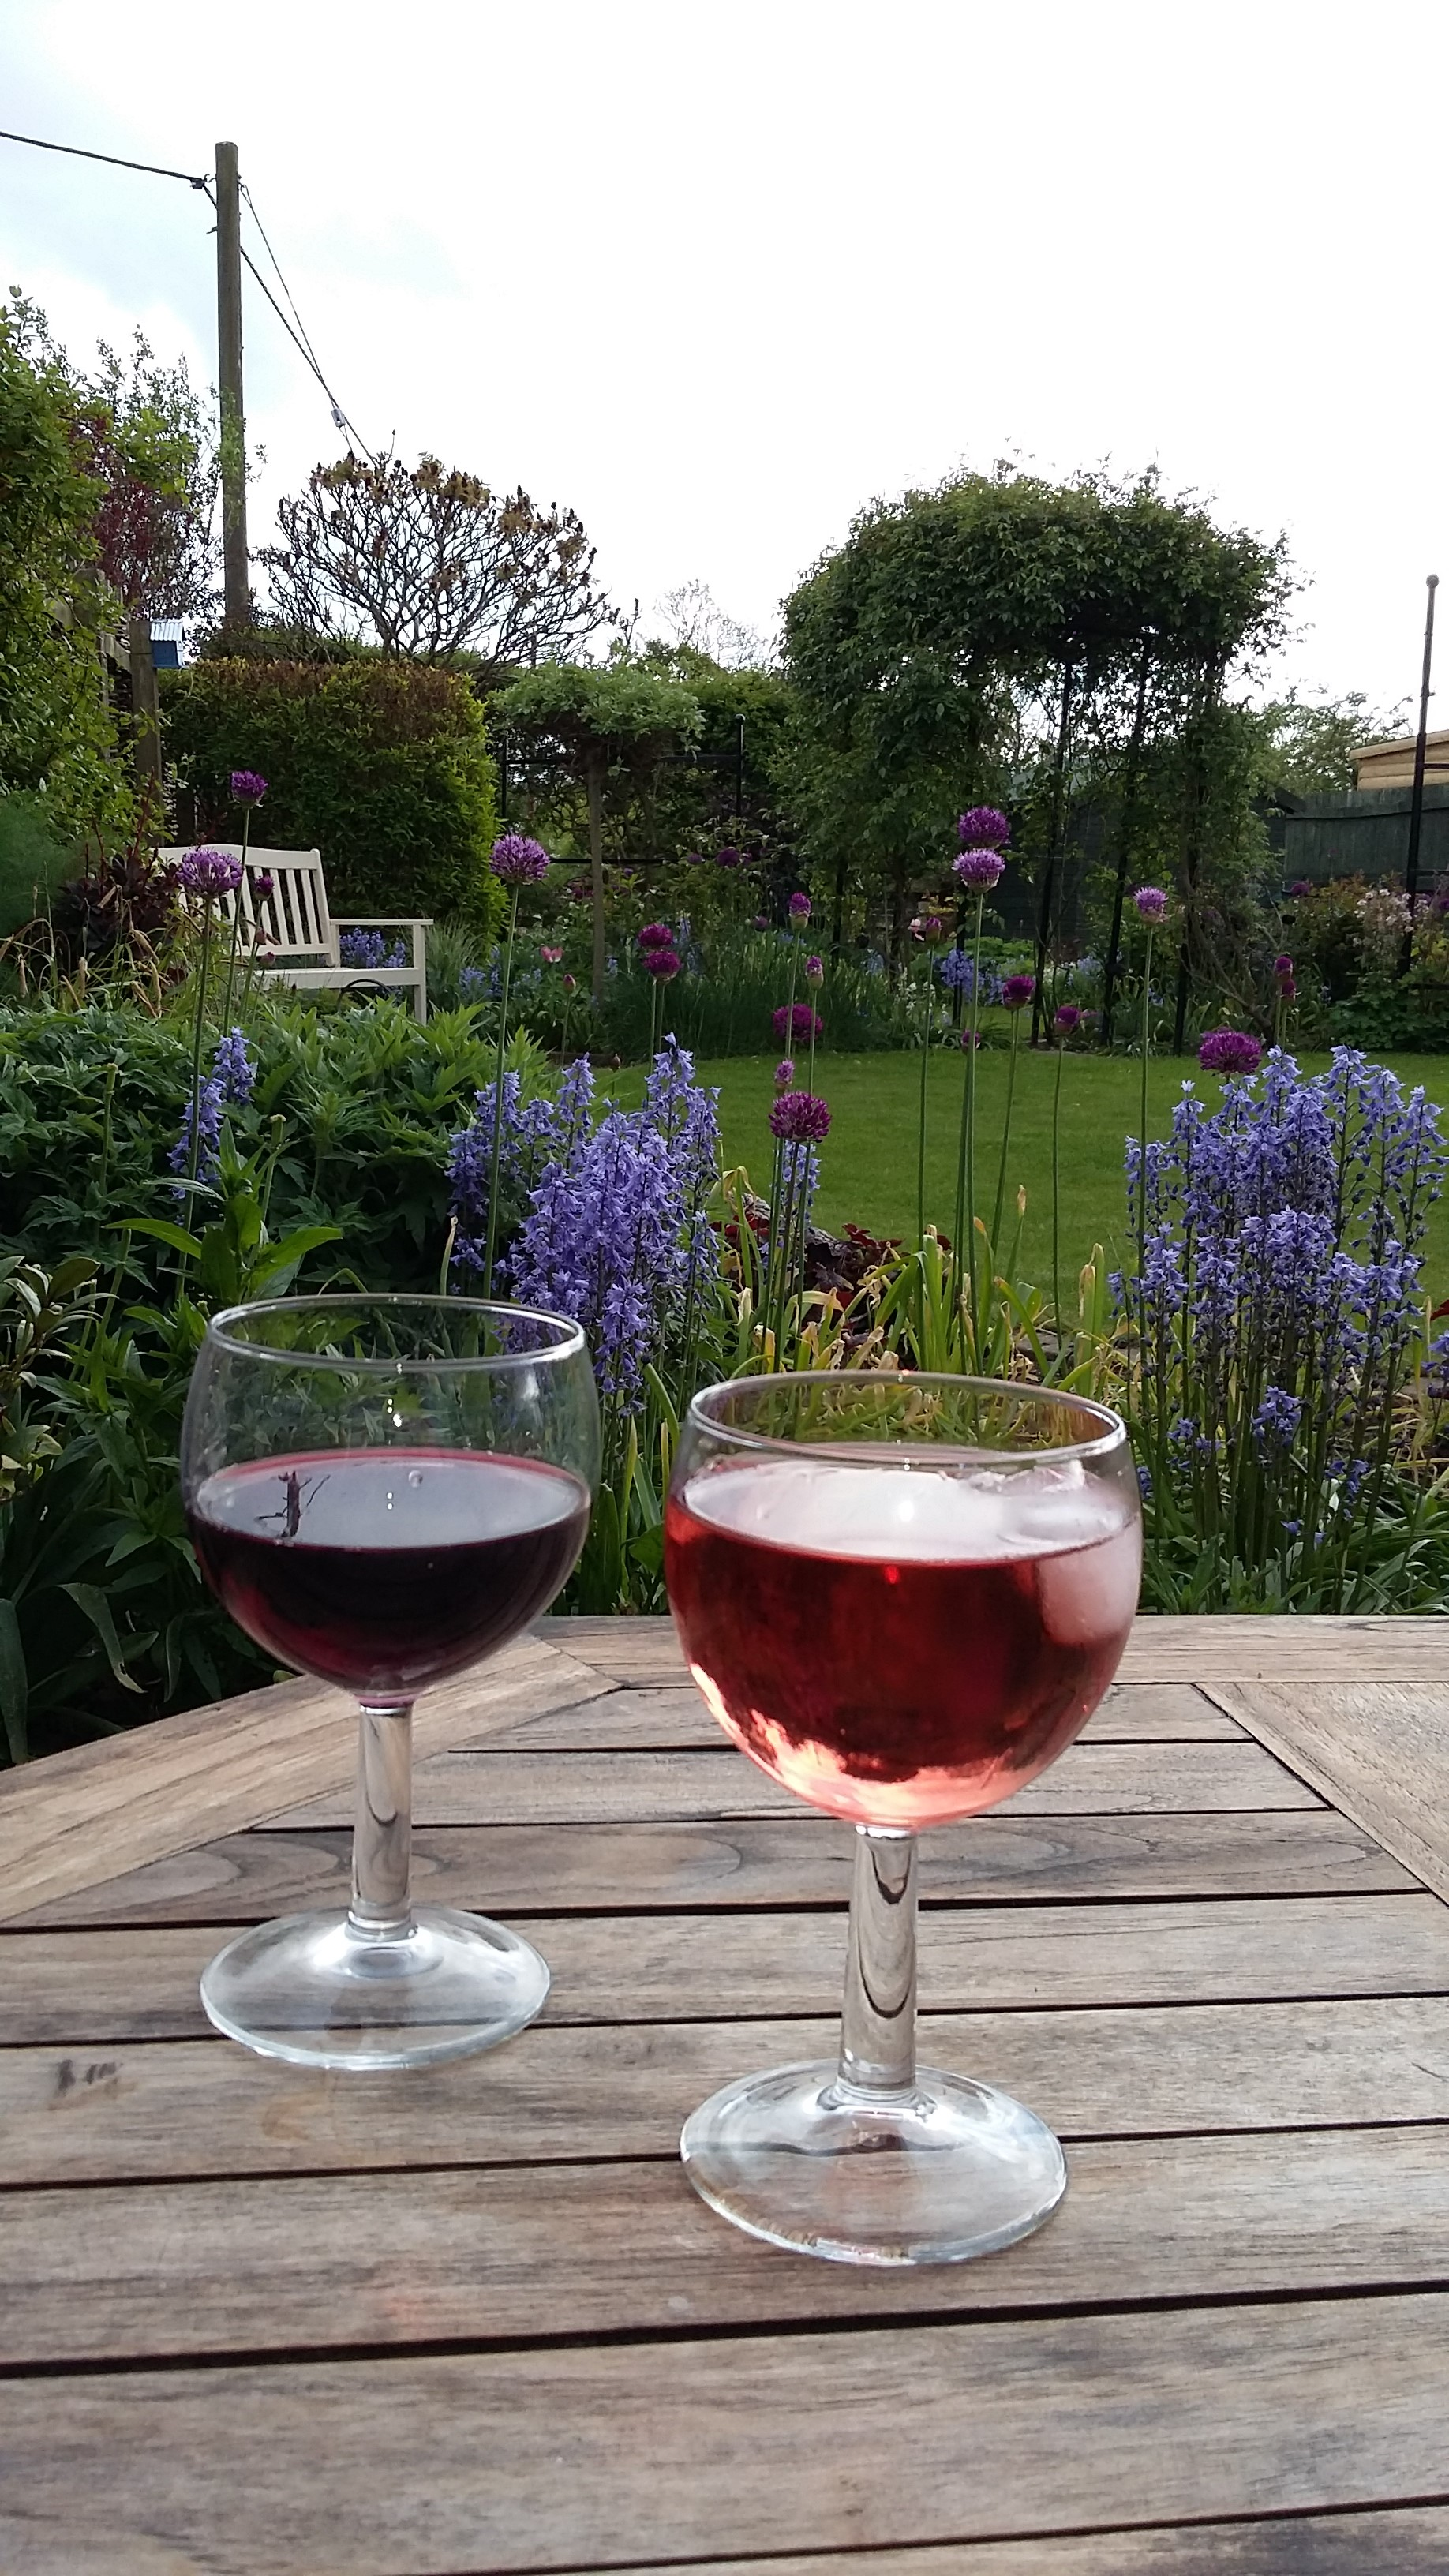 relax while self catering in Yorkshire